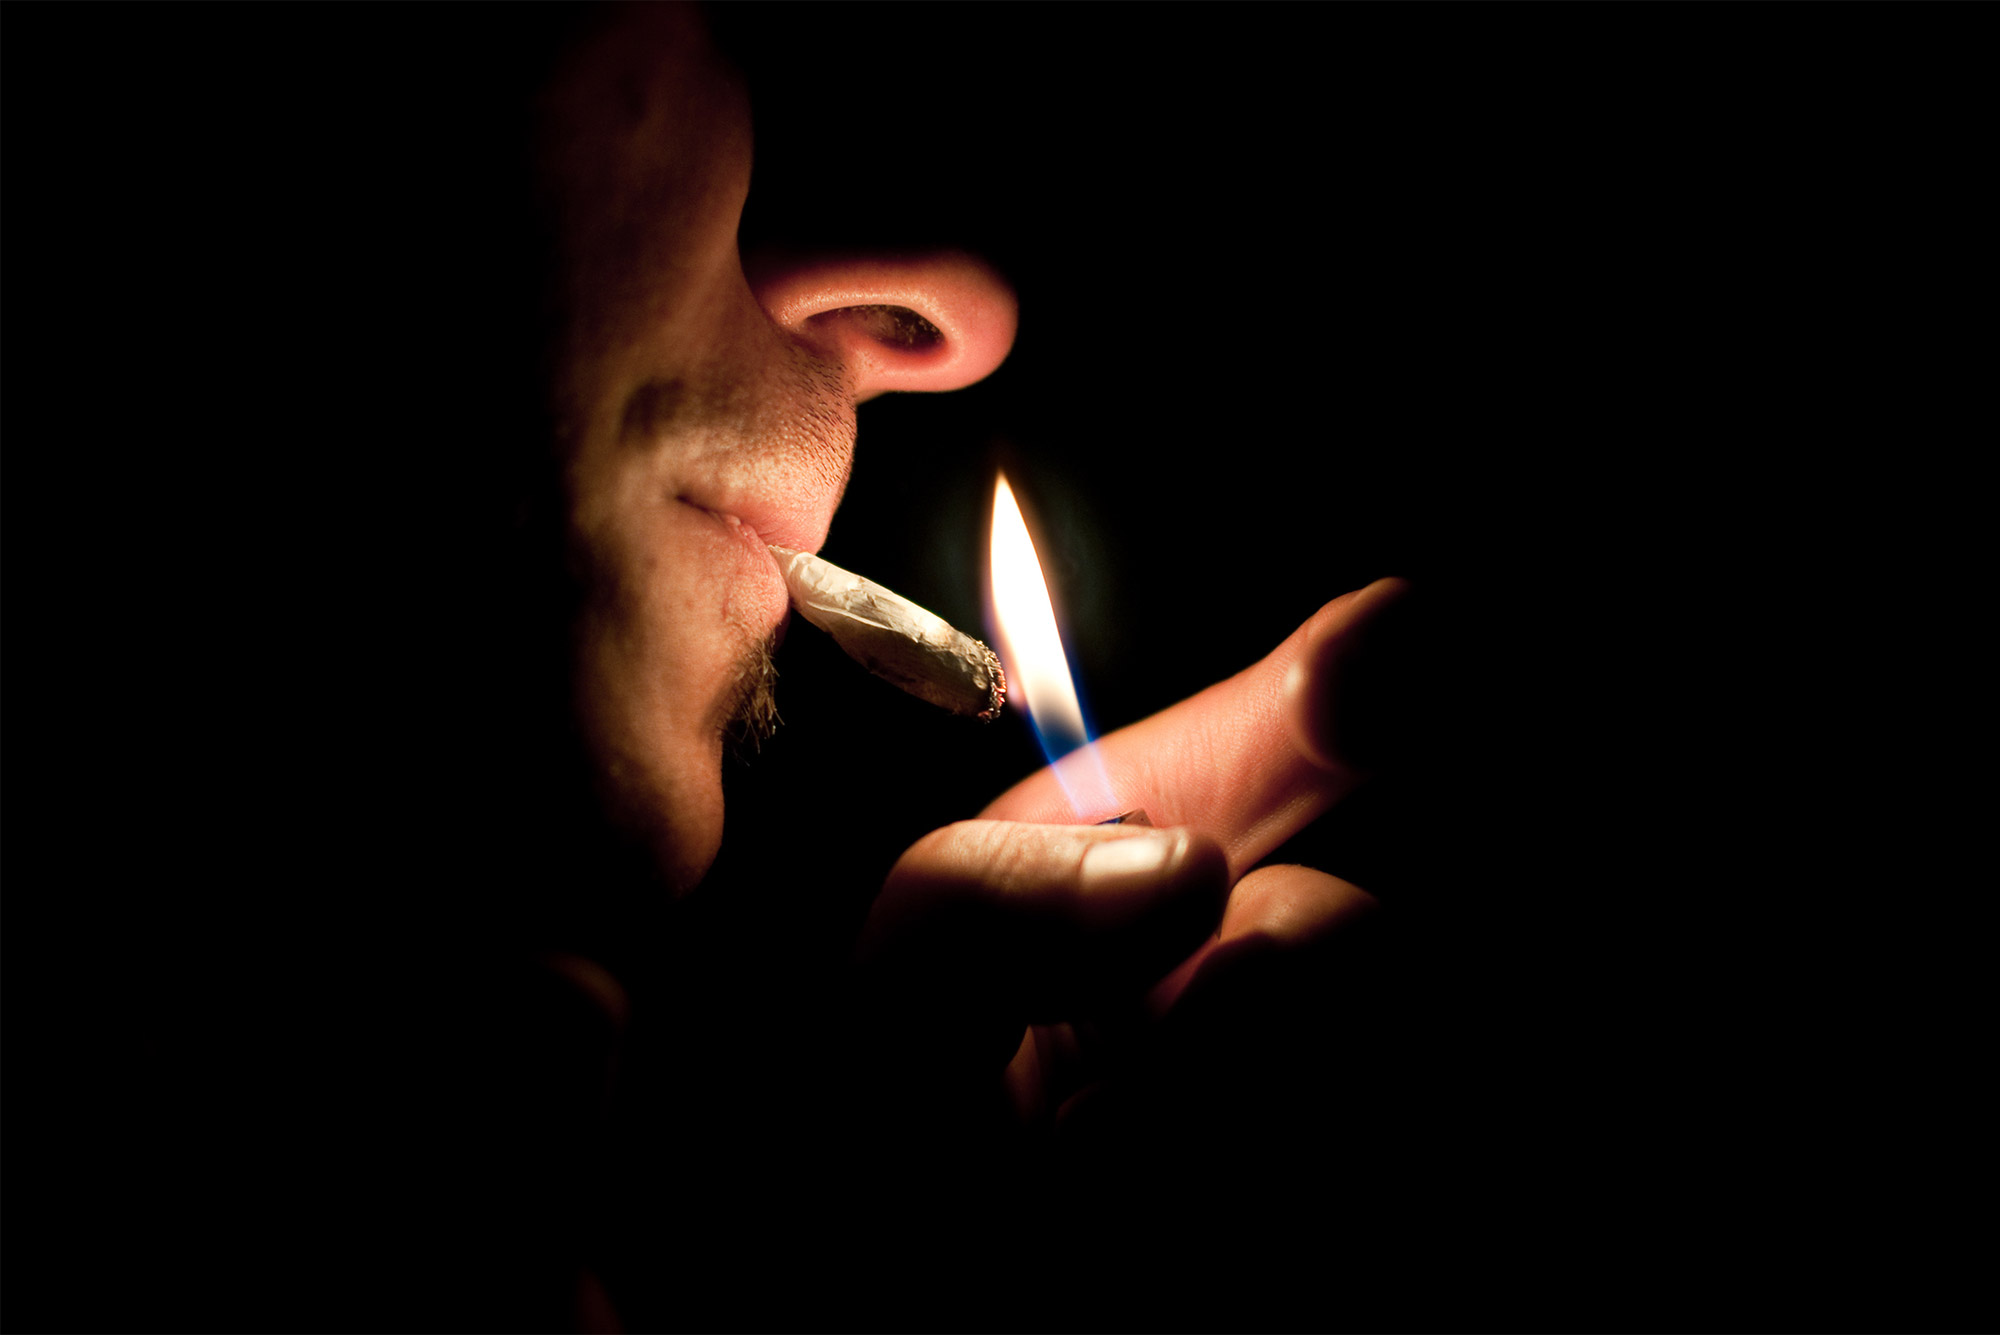 a man lights a joint with a lighter in the dark.